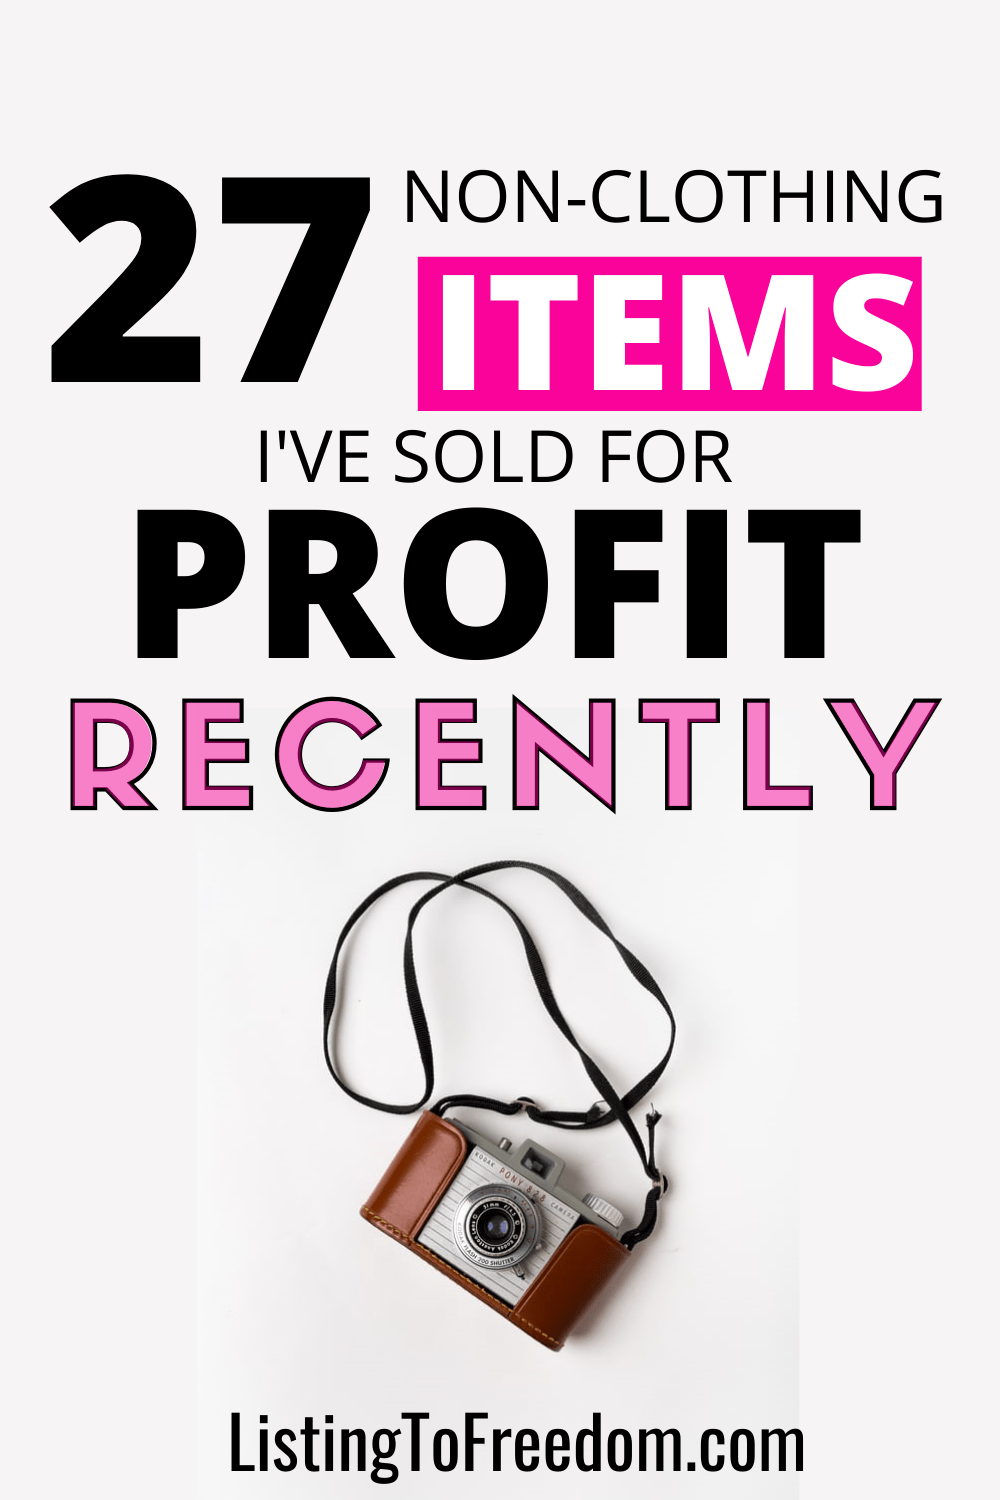 27 Non-Clothing Items To Sell